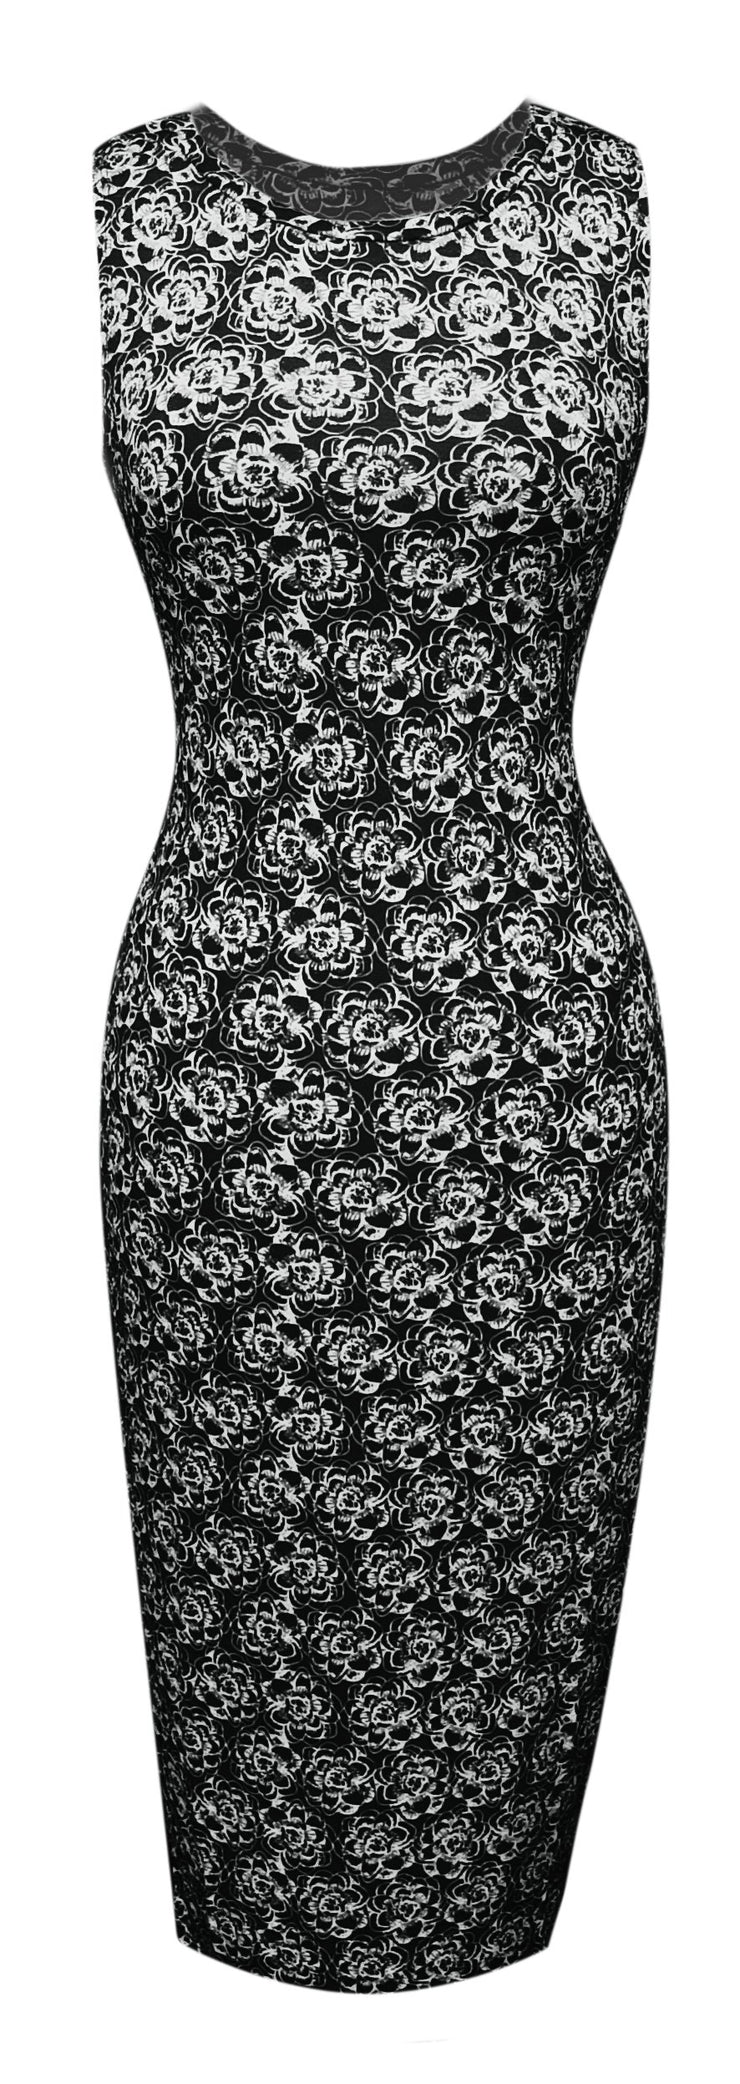 A1588-Floral-BodyconDress-Black-Sm-JG